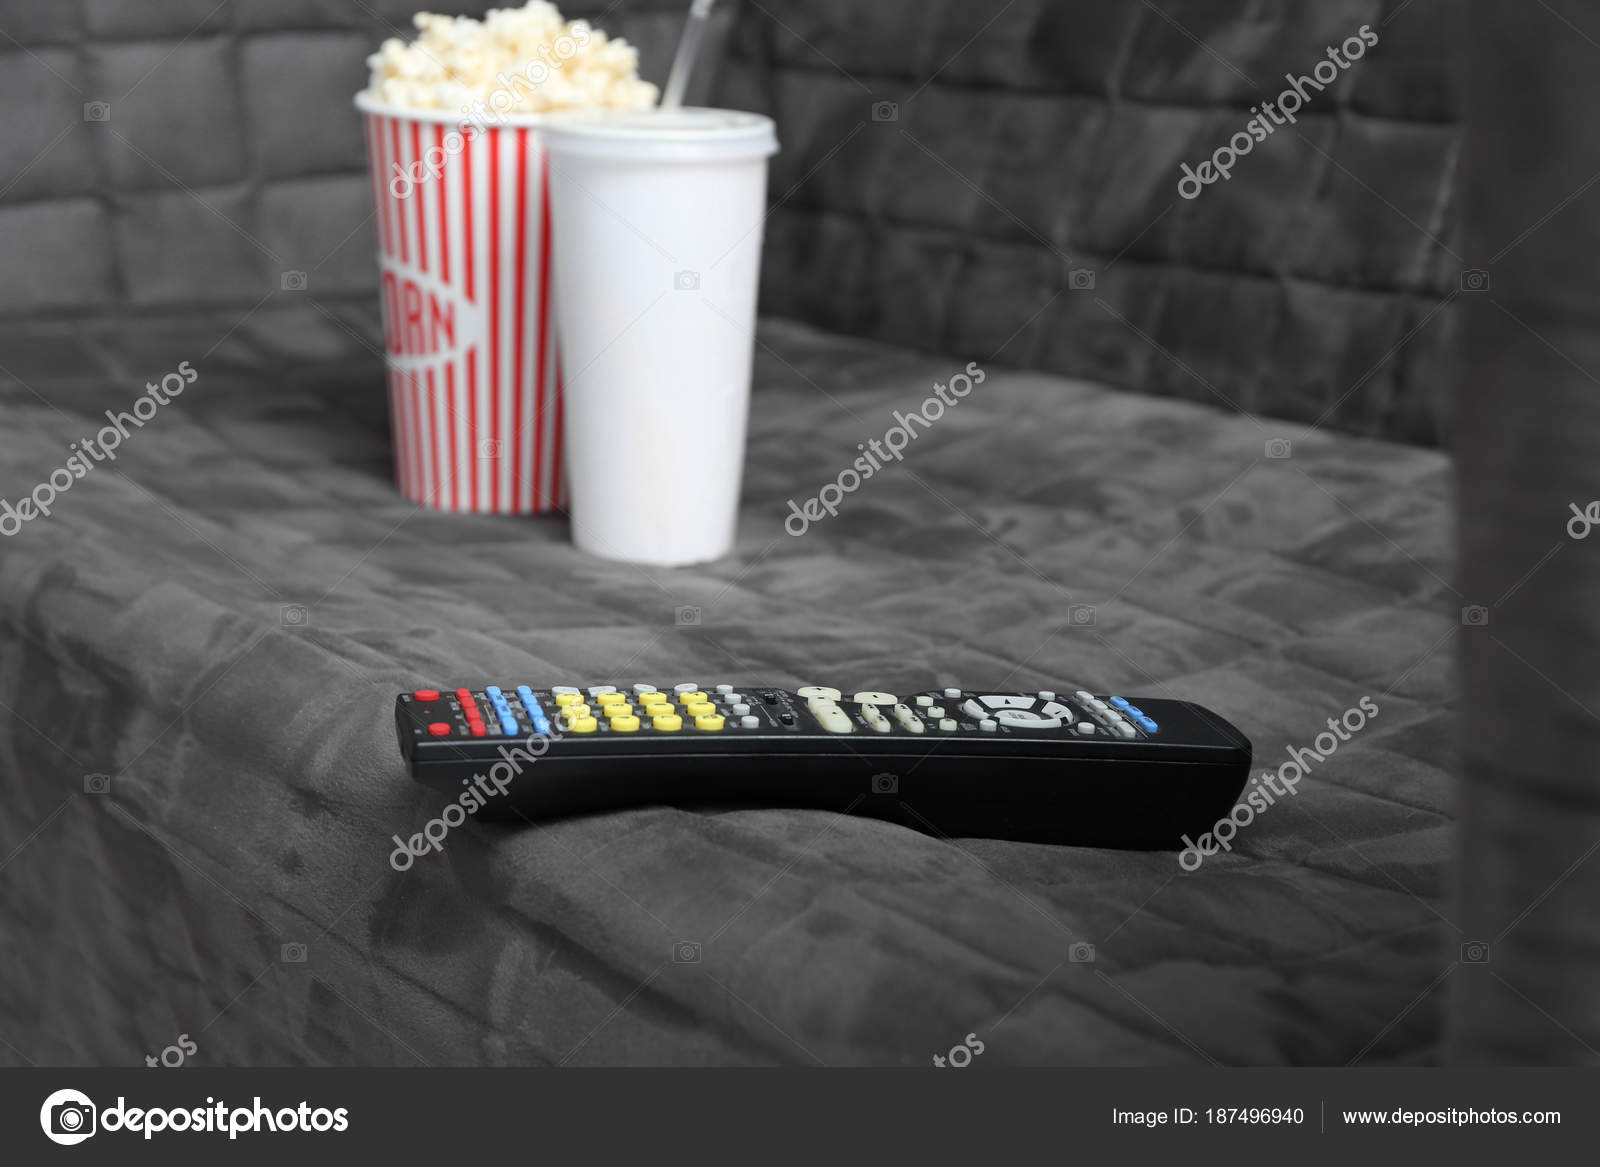 Comfortable sofa with TV remote control and snack, closeup  Home